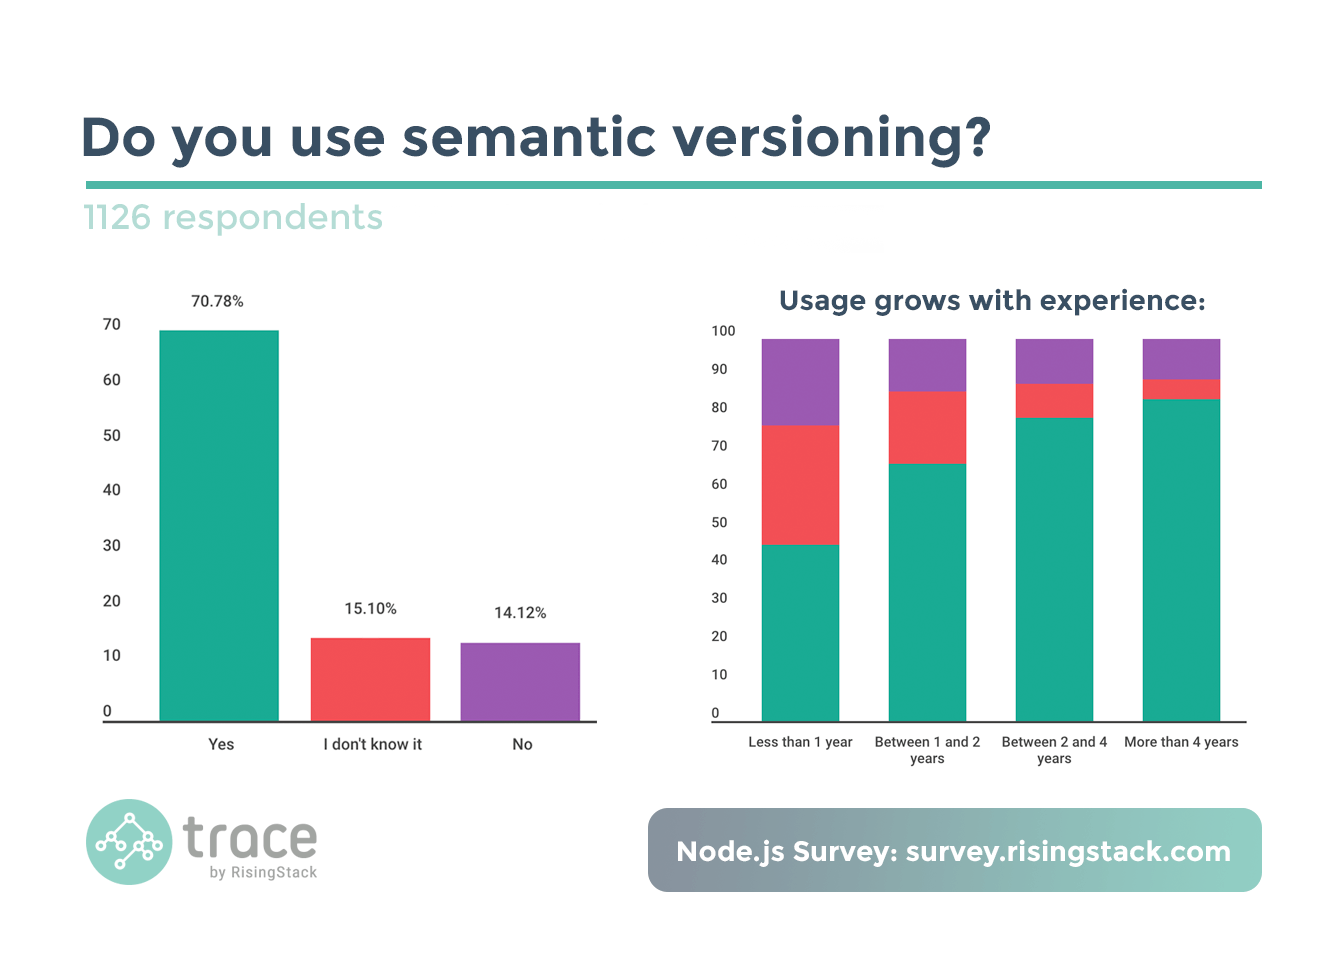 Node.js Best Practices for 2017 - Semantic versioning survey results